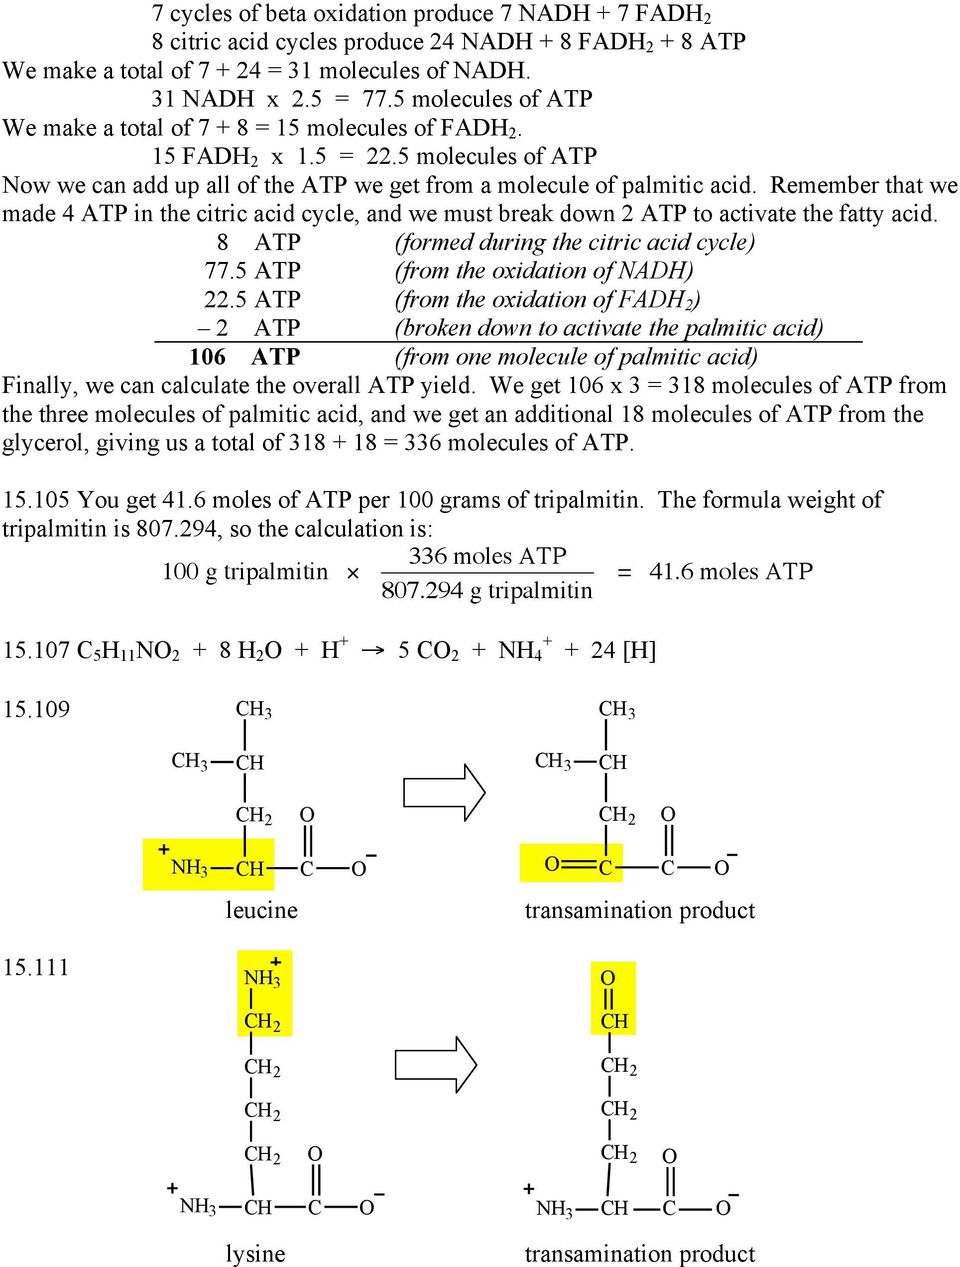 Remember that we made 4 ATP in the citric acid cycle, and we must break down 2 ATP to activate the fatty acid. 8 ATP (formed during the citric acid cycle) 77.5 ATP (from the oxidation of NADH) 22.